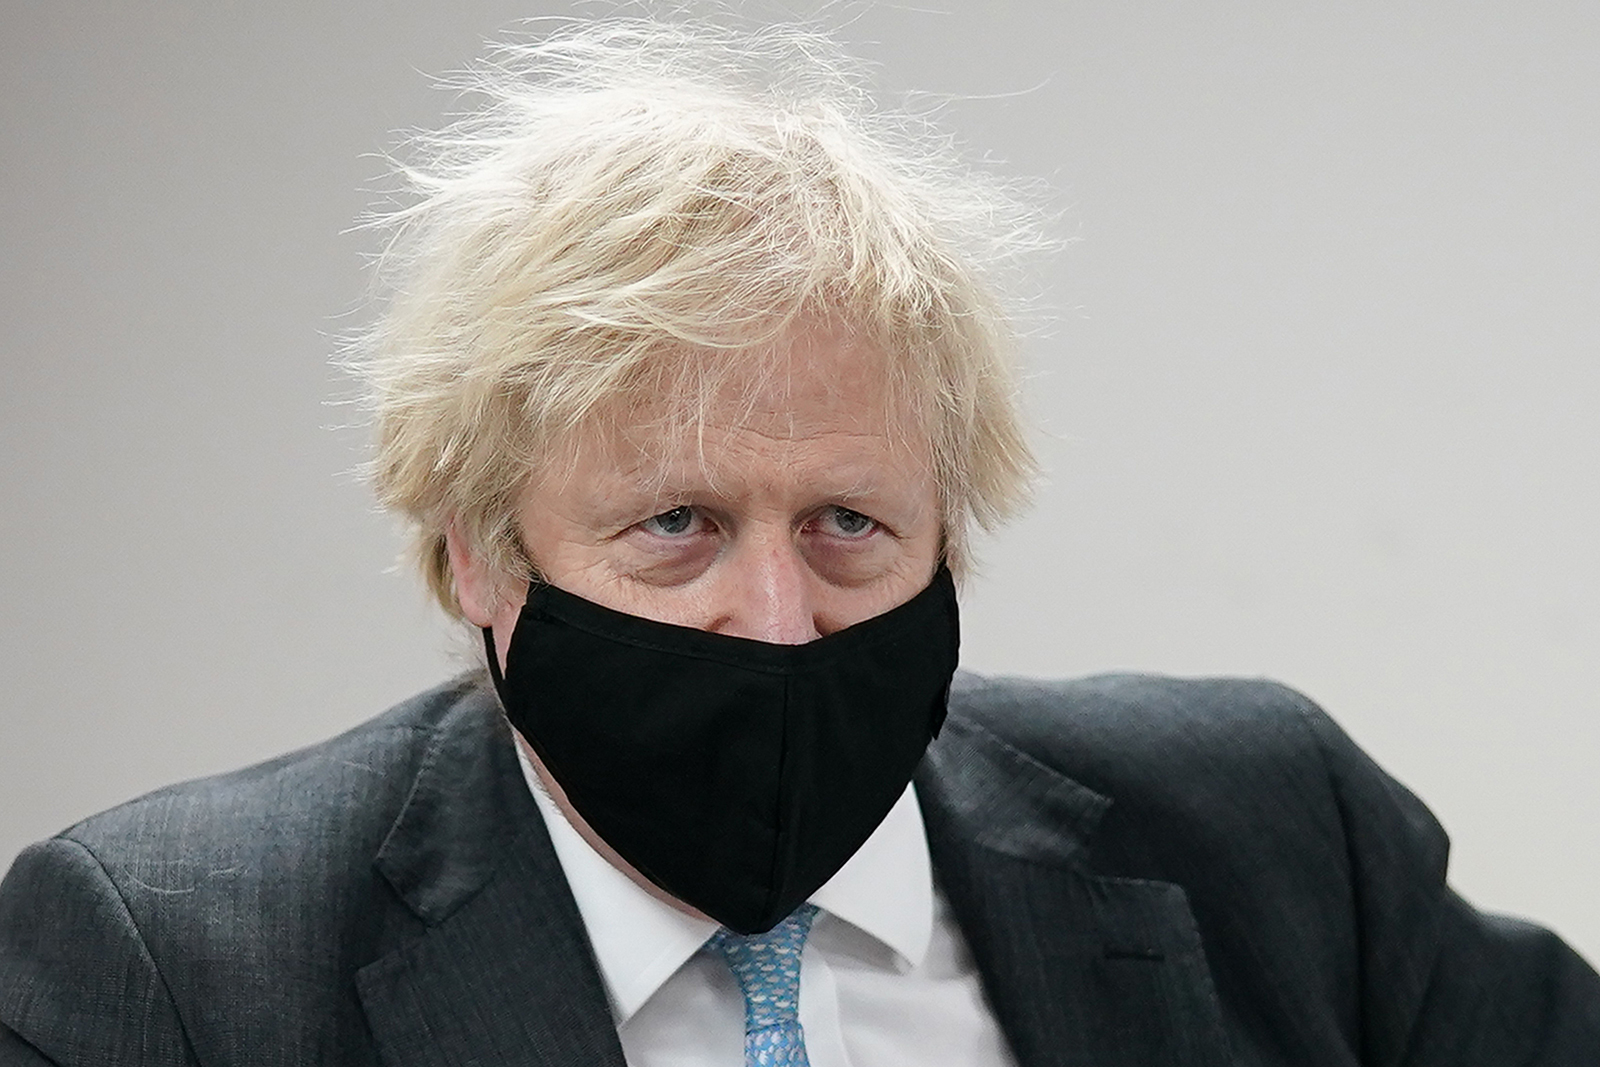 Britain's Prime Minister Boris Johnson visits the QuantuMDx Biotechnology company in Newcastle upon Tyne, England, on February 13.